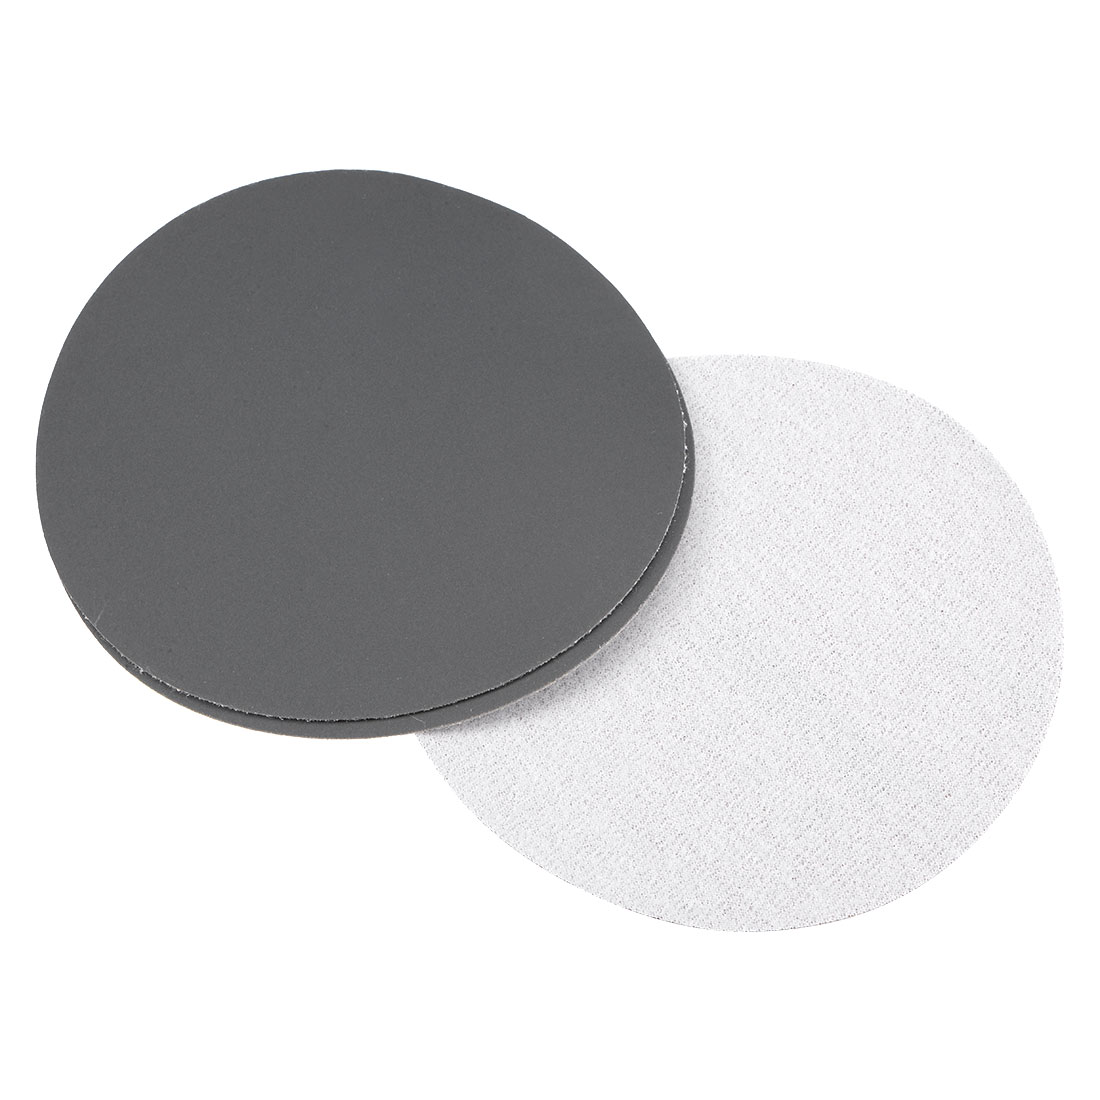 5 inch Wet Dry Discs 1200 Grit Hook and Loop Sanding Disc Silicon Carbide 3pcs